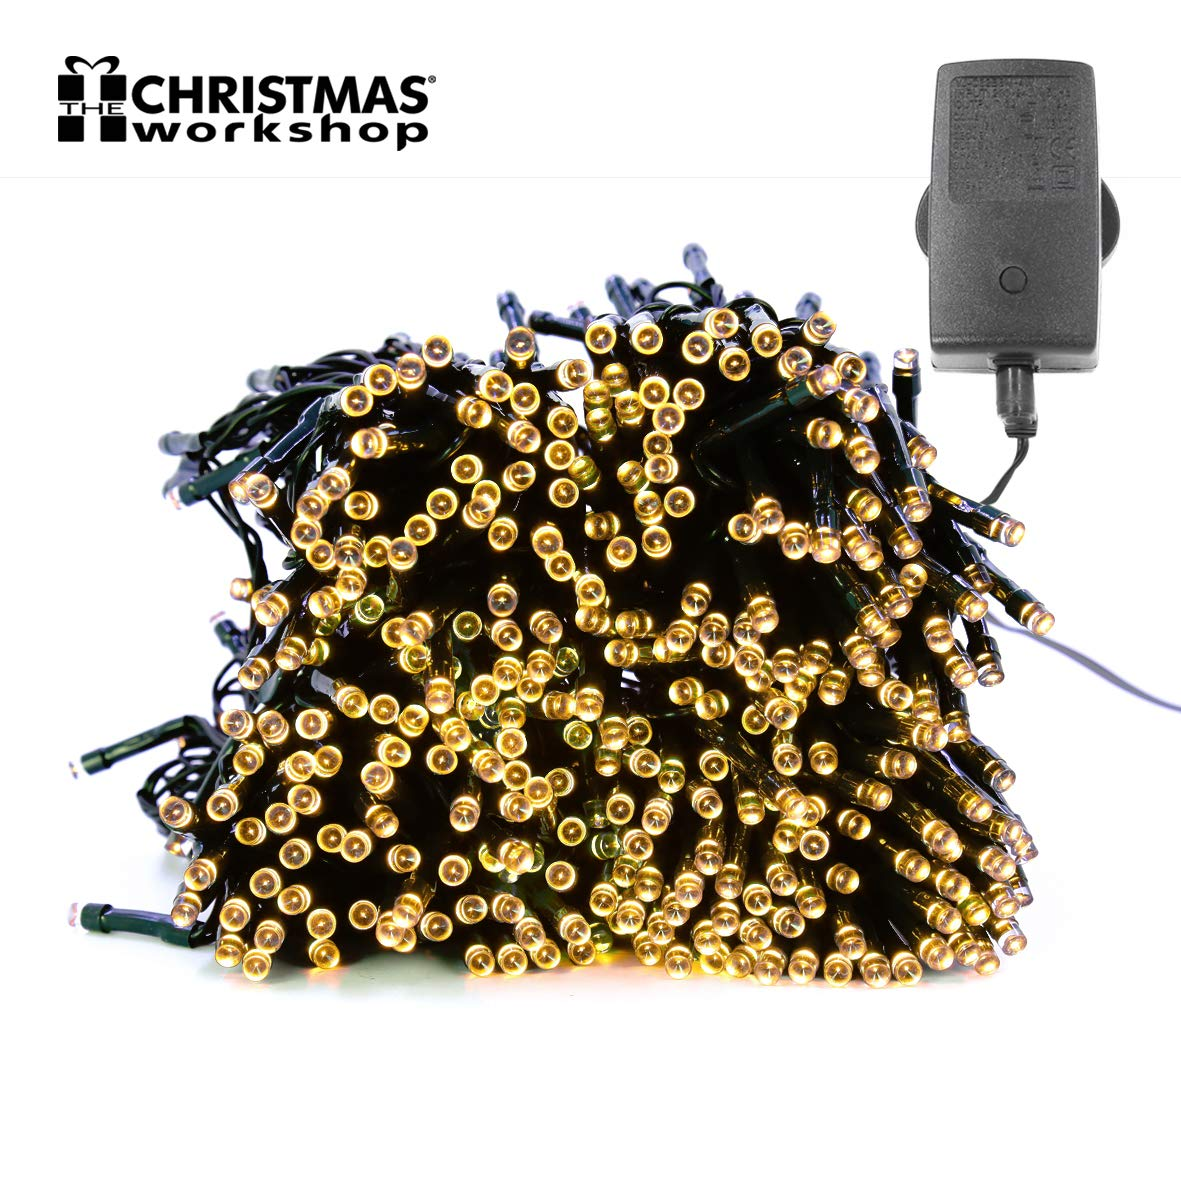 76230 Christmas Workshop Benross 600 LED Chaser String Lights Warm White, Multi Function Flashing Fairy Light, 8 Modes, Indoor & Outdoor - Garden Party Wedding Benross Group